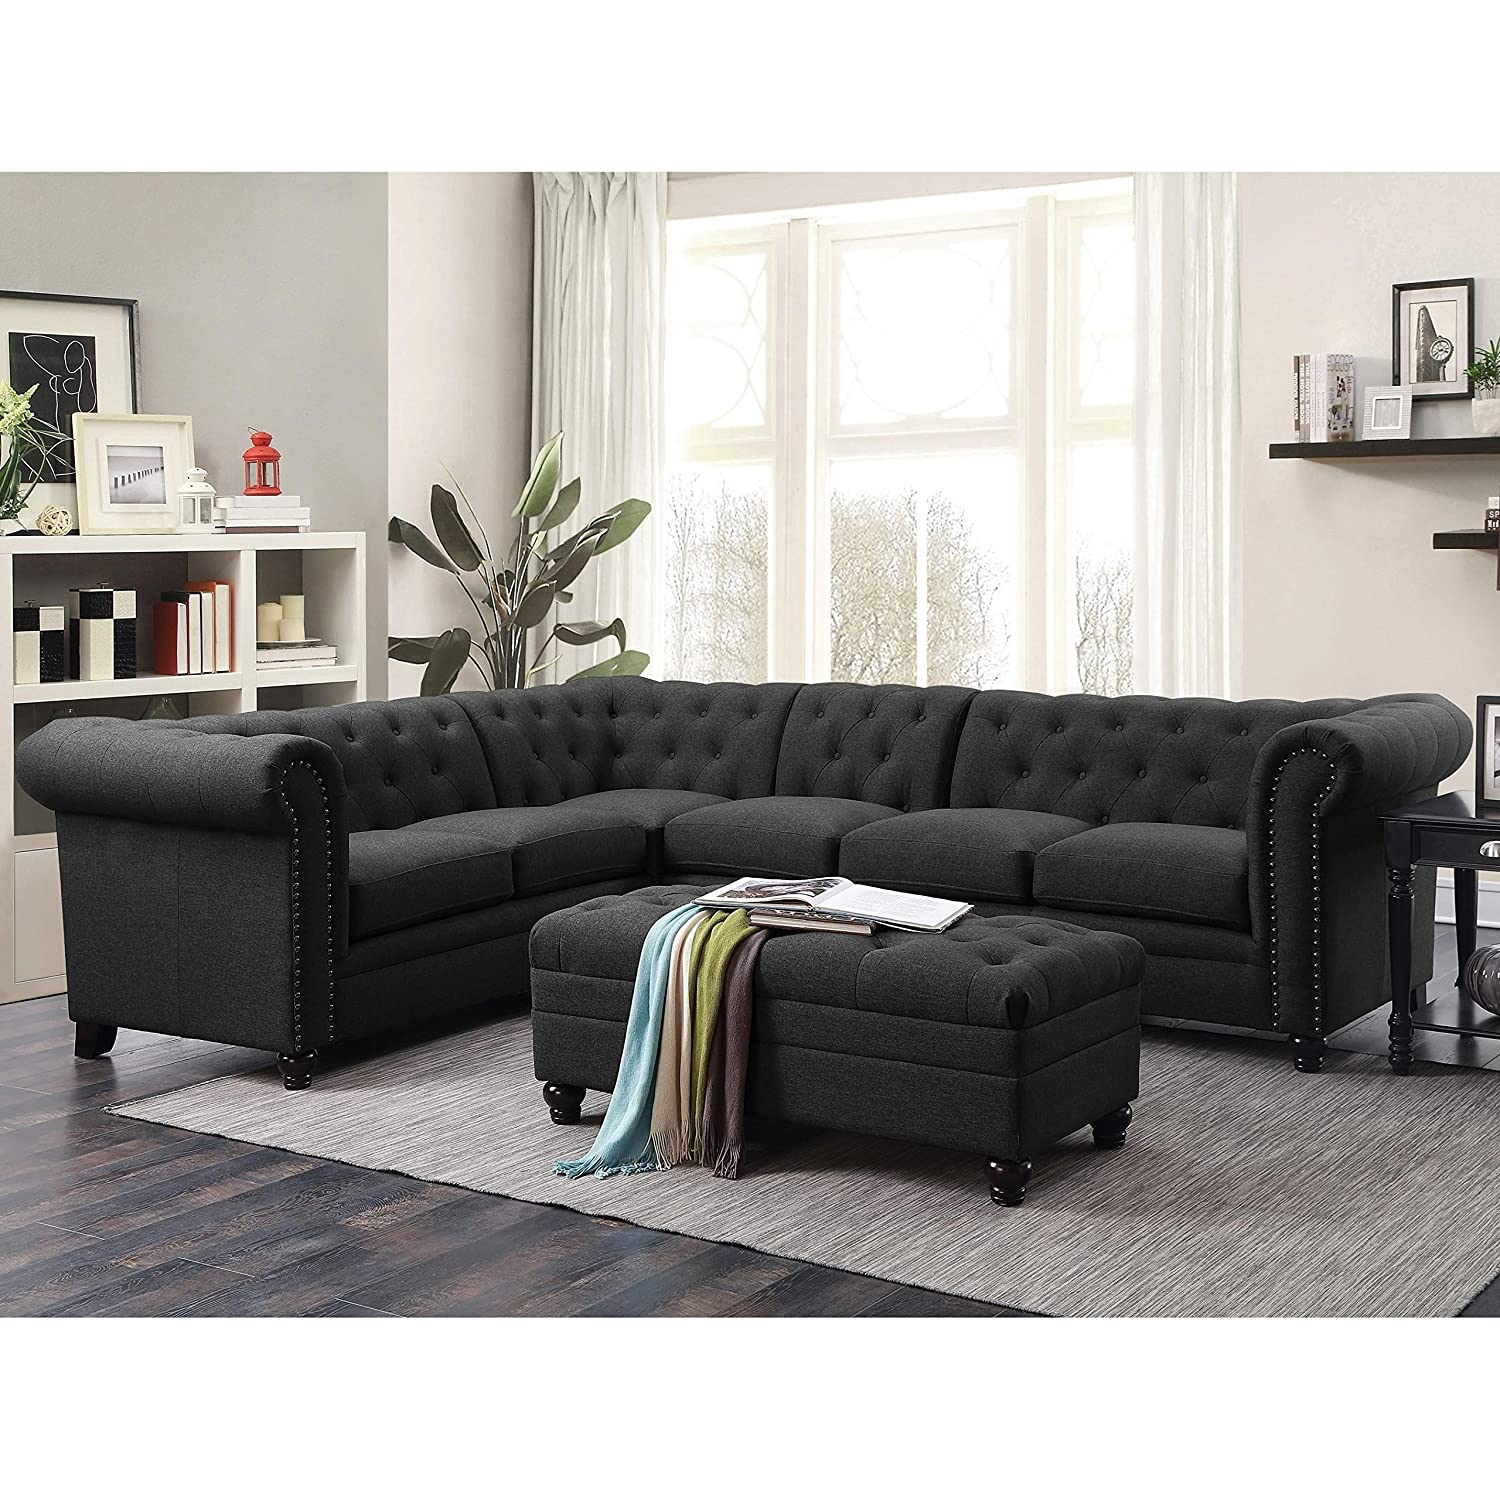 Details about Coaster Home Furnishings 500413 Living Room Sectional Sofa,  Grey